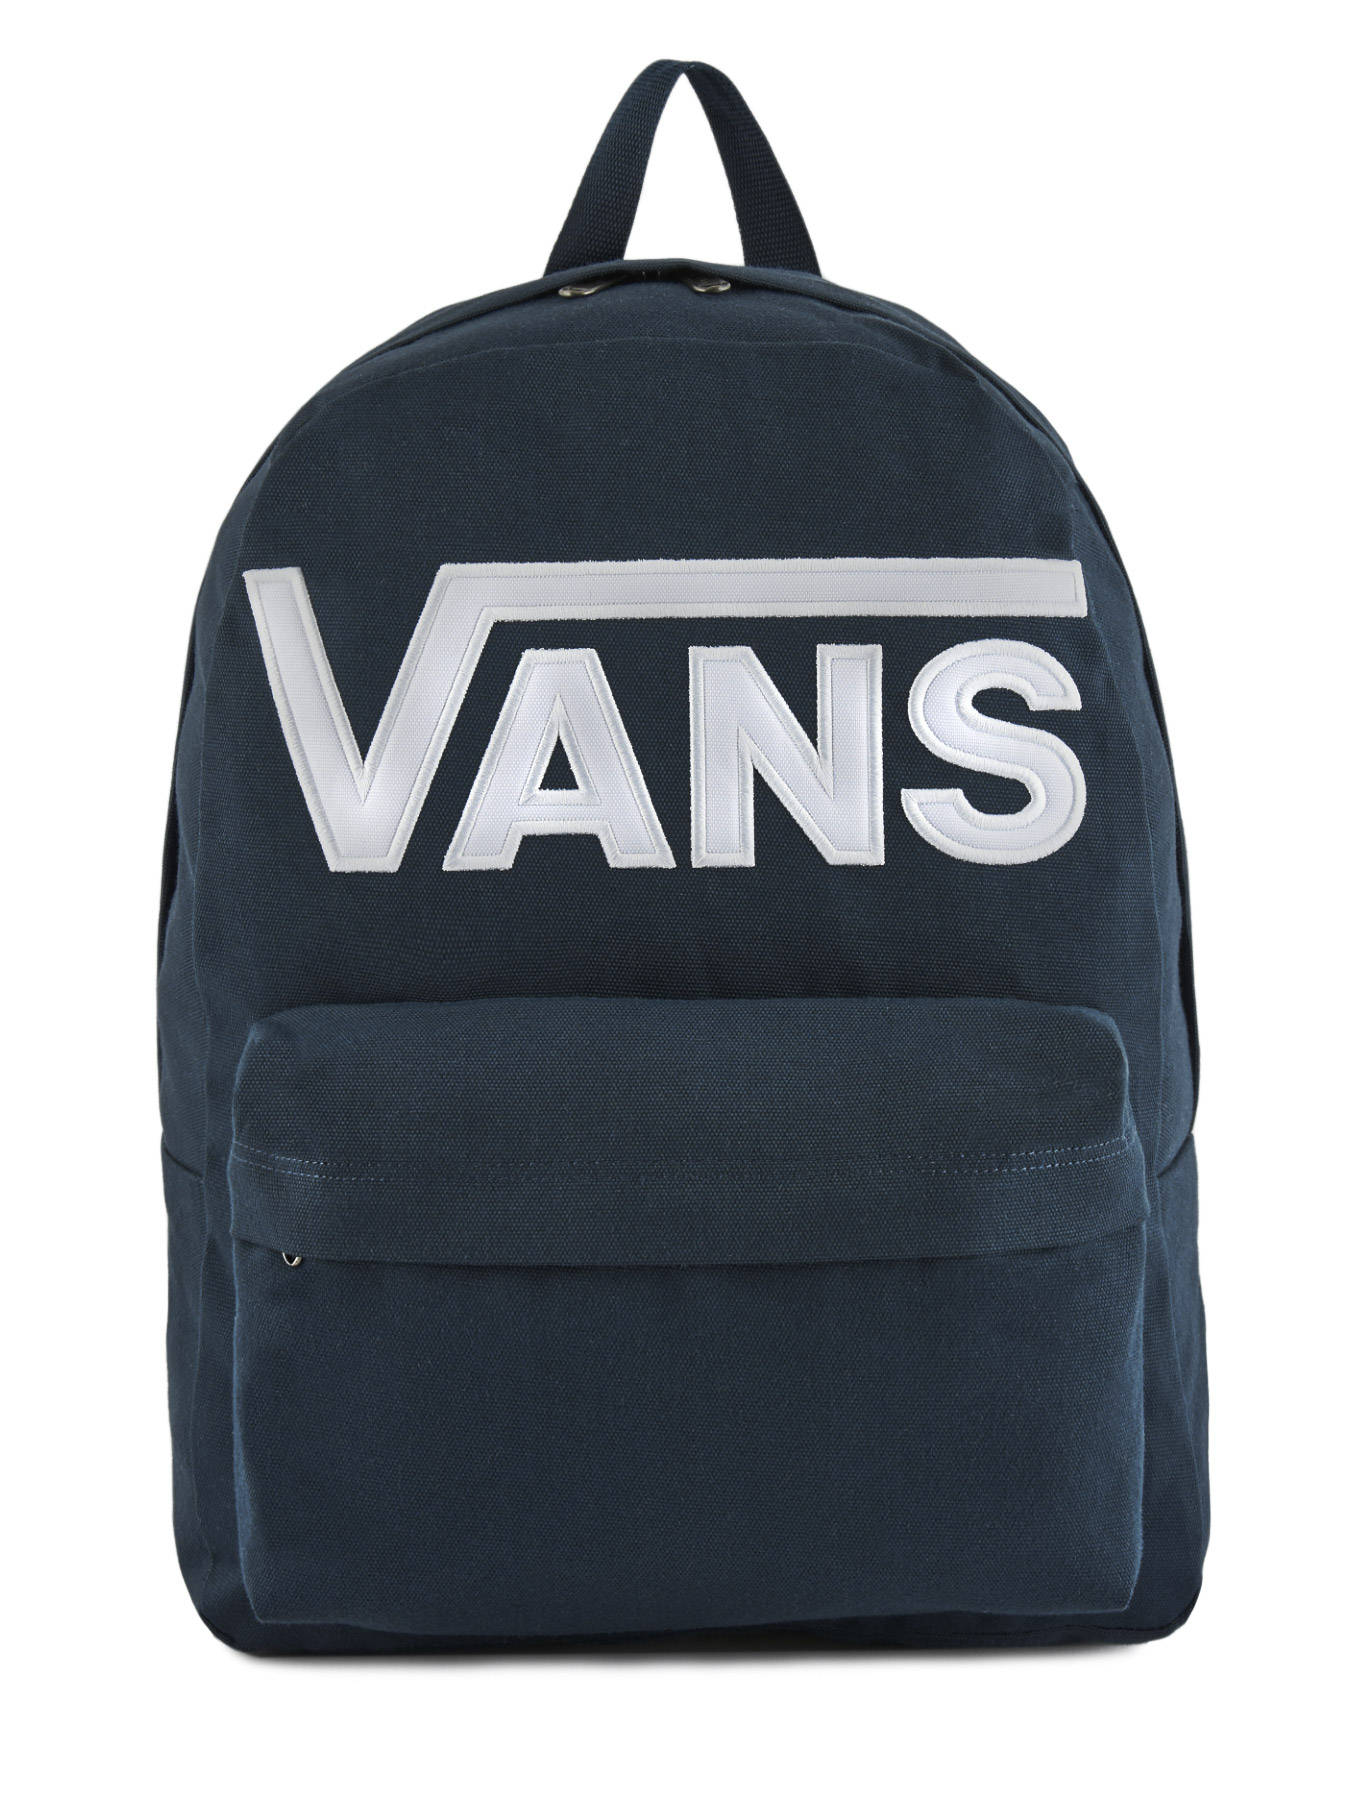 Sac à dos 1 compartiment + PC 15'' VANS